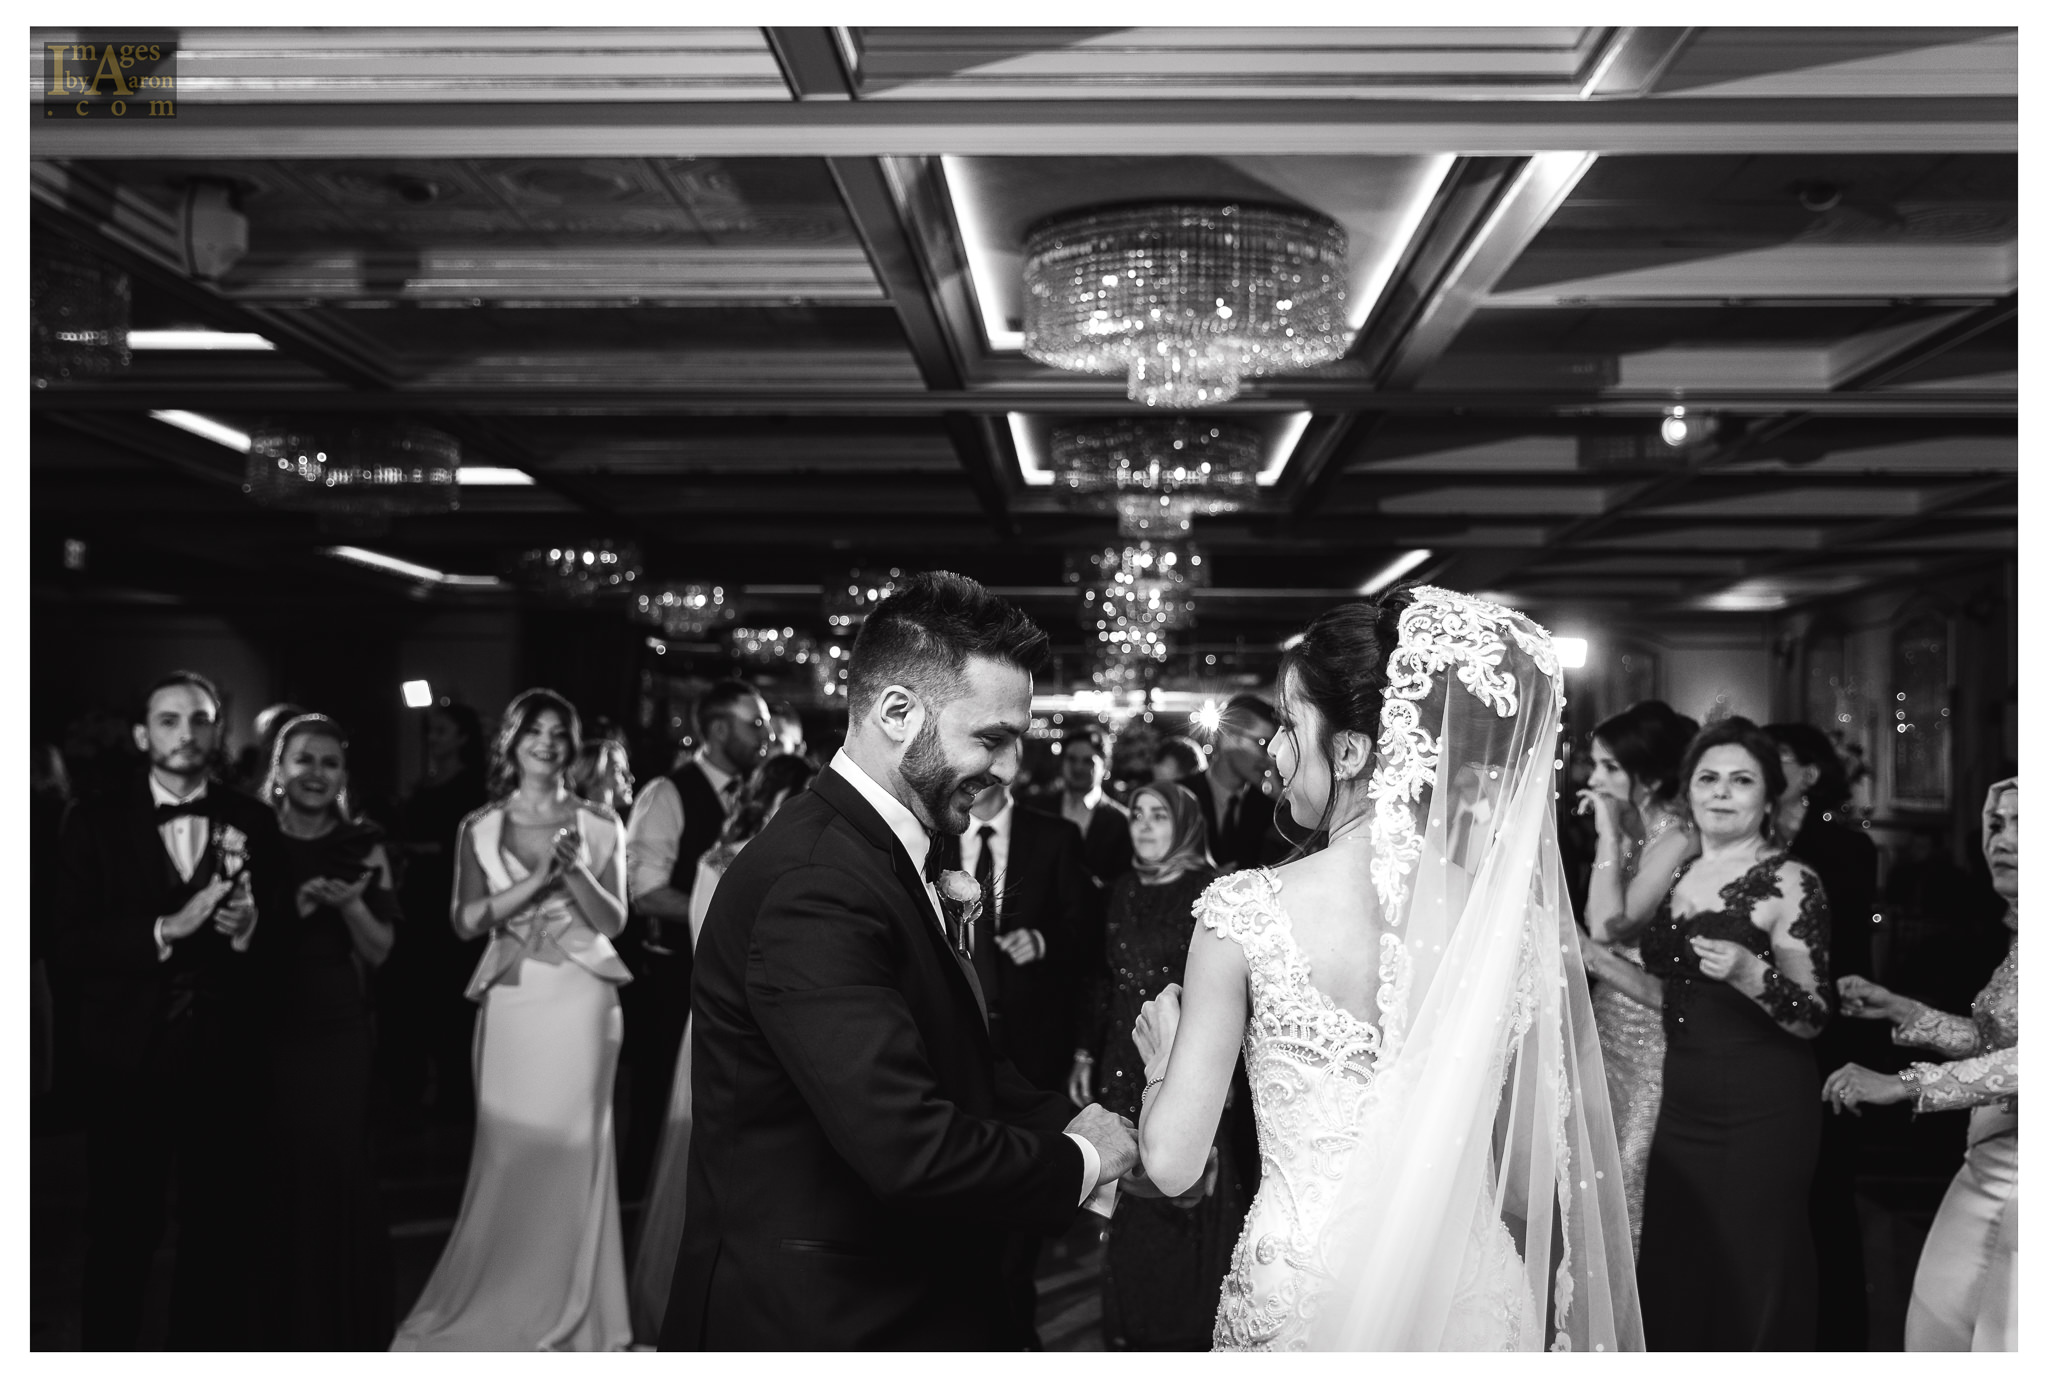 Gokce Turkish Wedding Reception New York Photographer Wedding Photography The Royal Manor-17.jpg